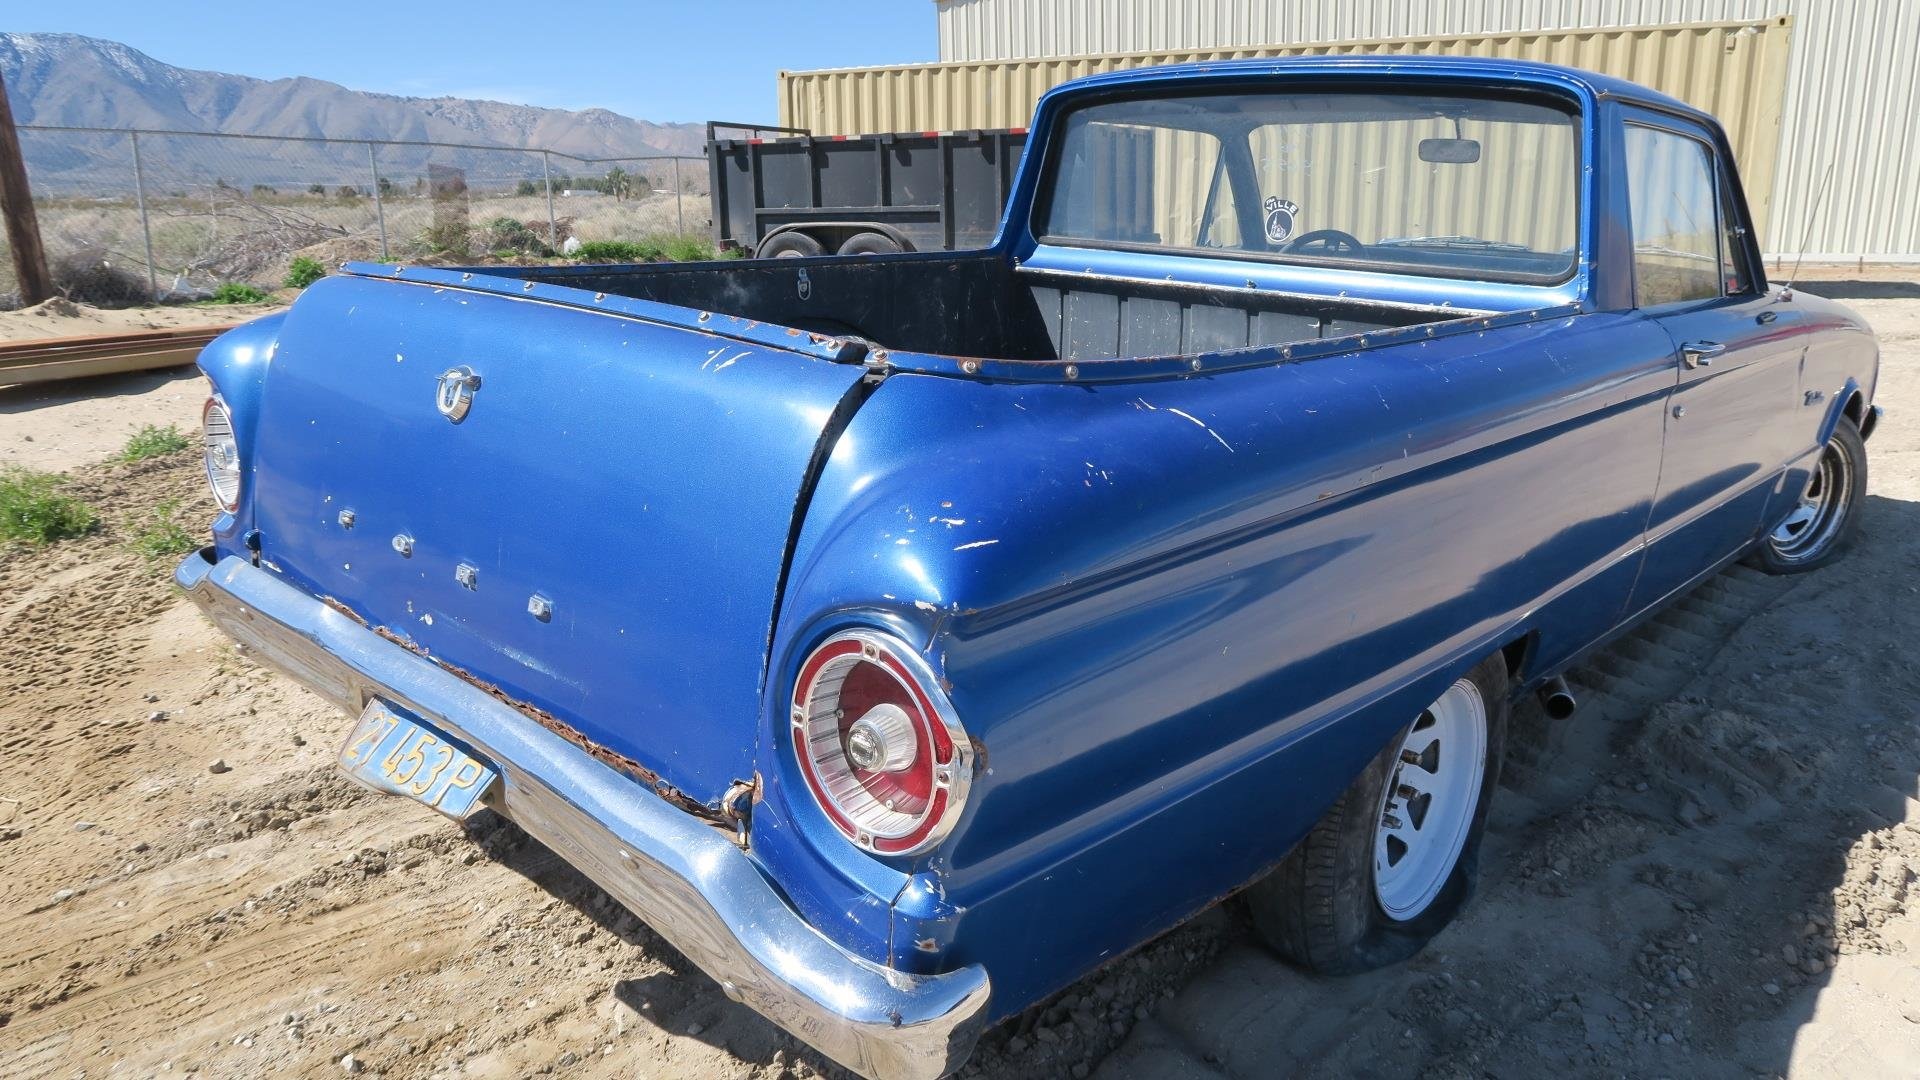 1961 Ford Ranchero Car(~)Truck 289 AT Cali Project $2.9k For Sale (picture 6 of 6)